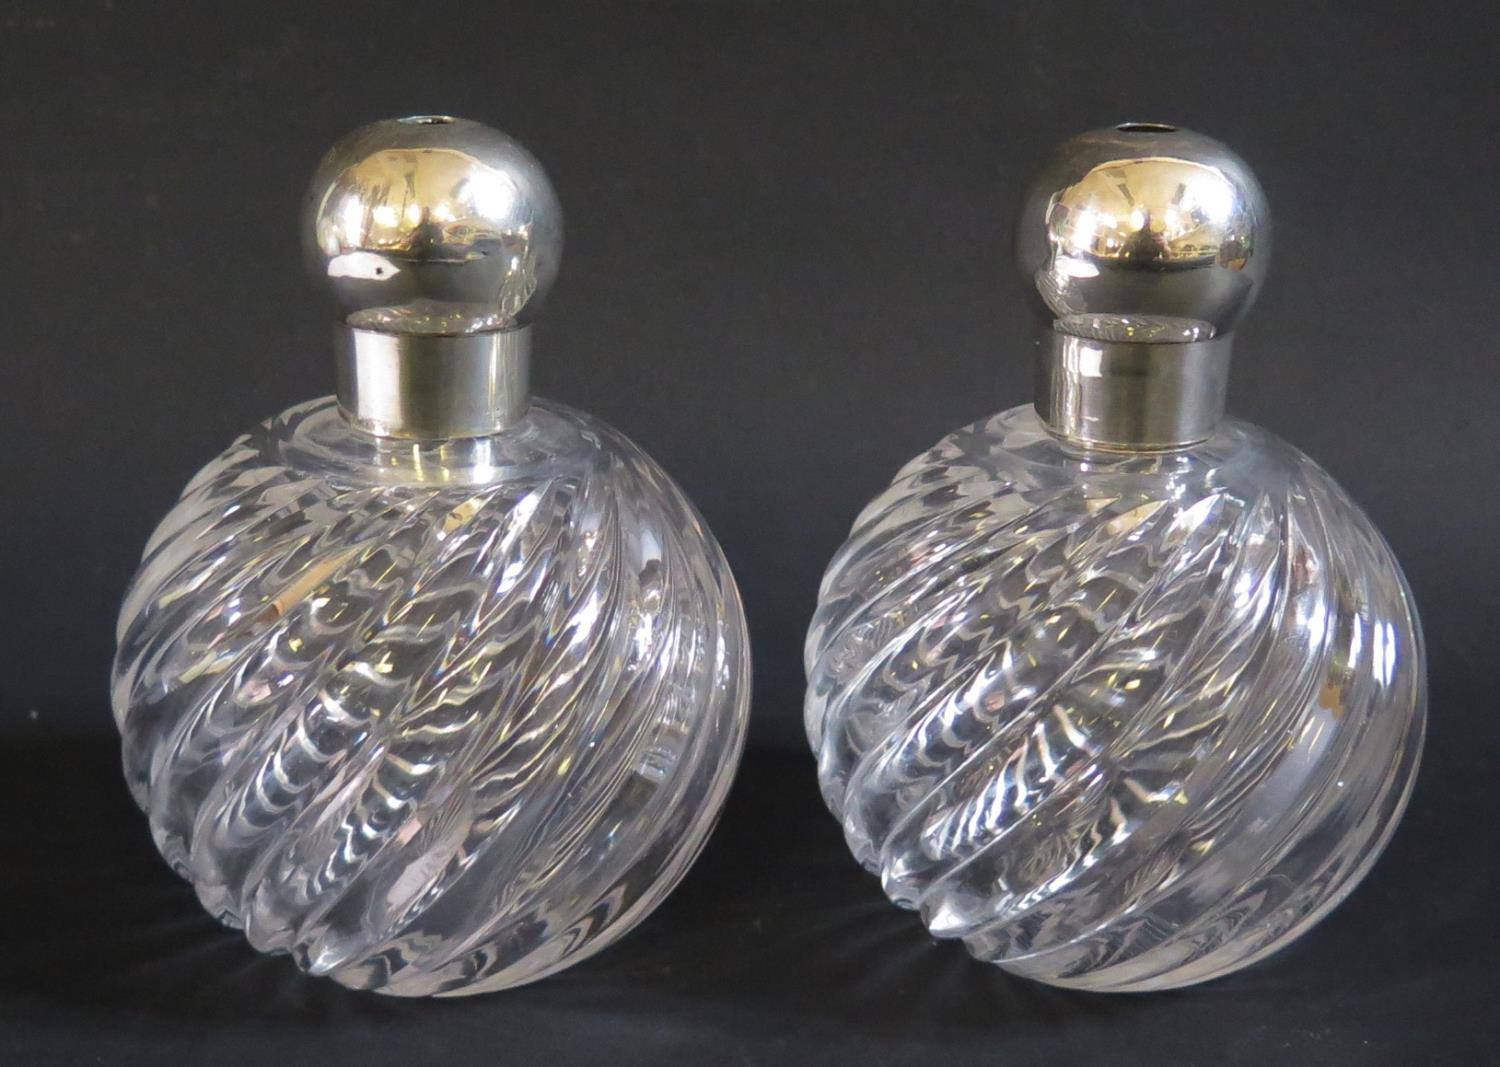 Lot 67 - A Pair of Victorian Silver Top Glass Atomisers (fittings missing), Birmingham 1888?, CM, 13.5cm high